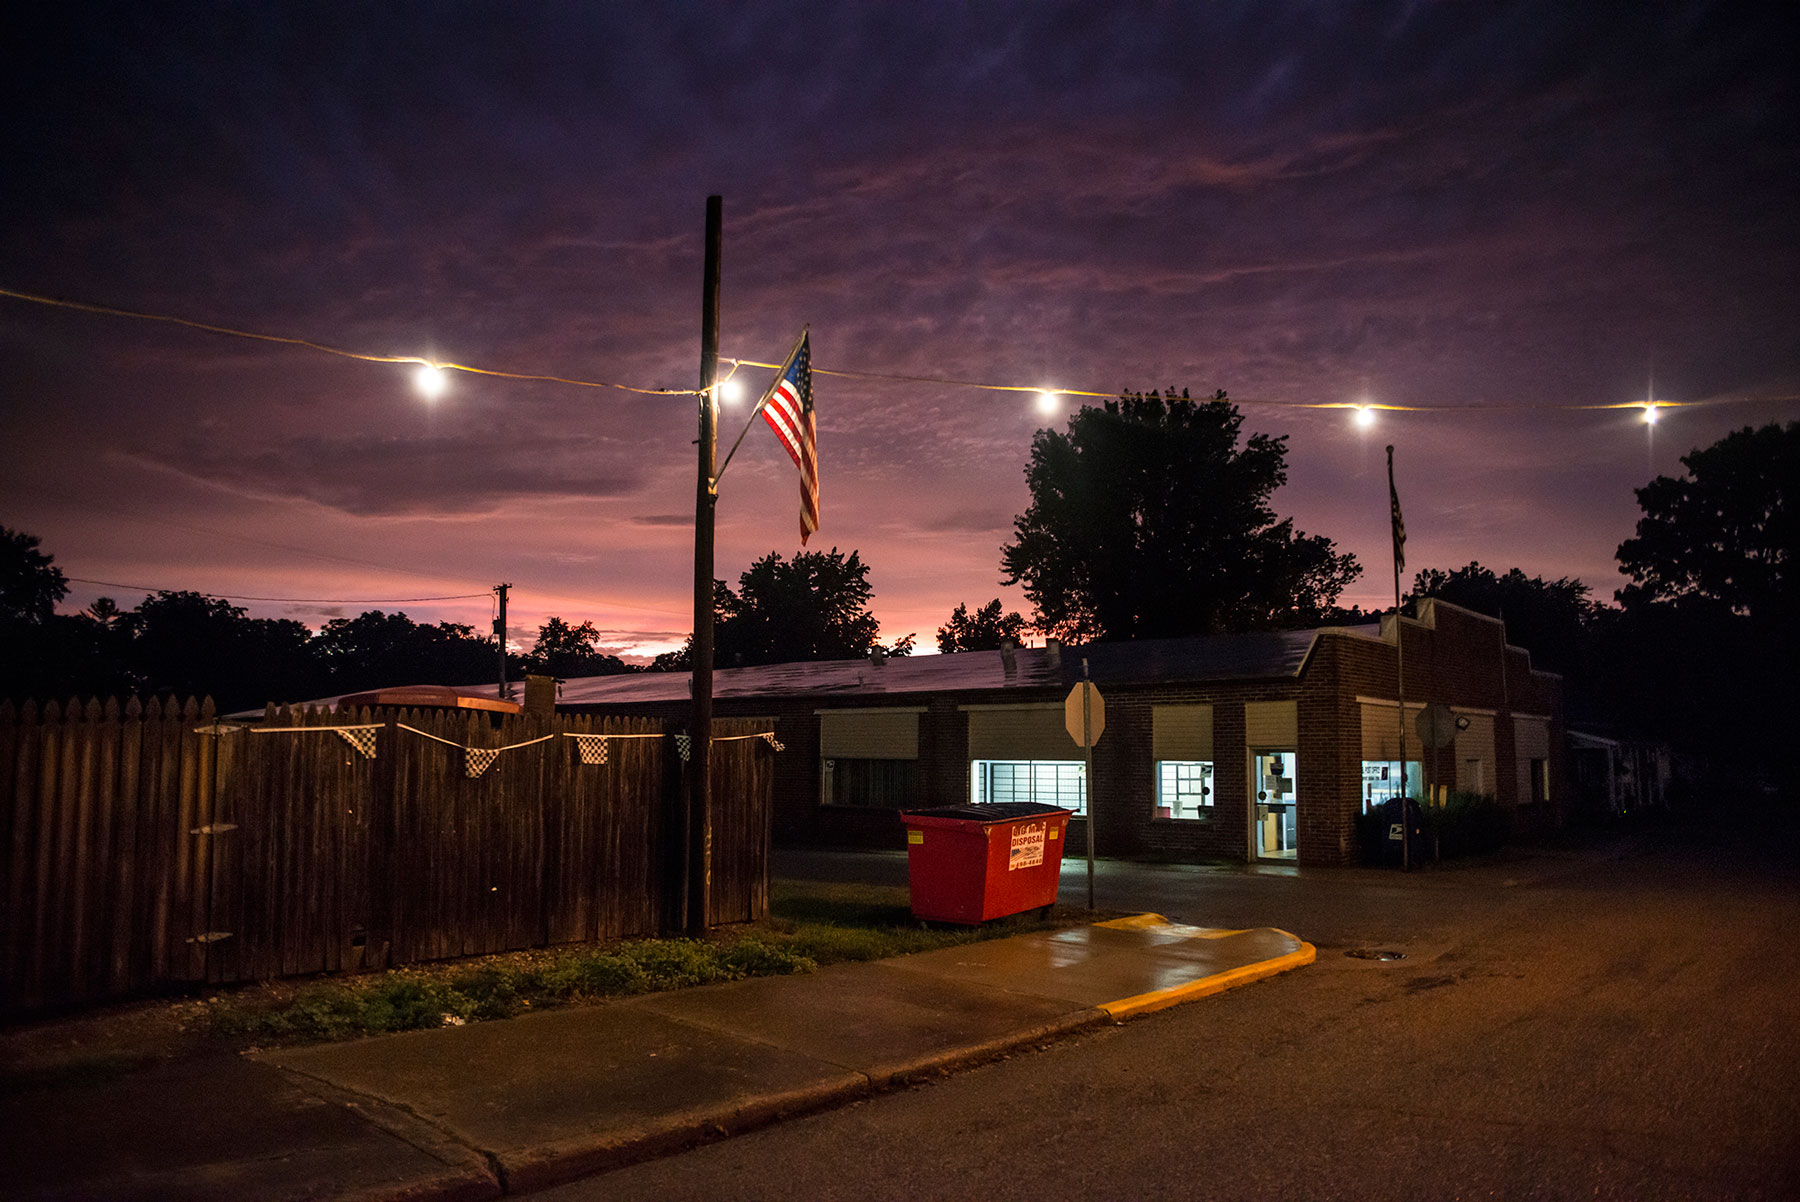 A brilliant sunset fades after a thunderstorm in Newport, Indiana. Residents said they did not have trouble voting because the small-town atmosphere means poll workers know all the townspeople, making it easier to prove their identity at the polls. Indiana was the first state to pass a strict photo ID law. (Roman Knertser/News21)